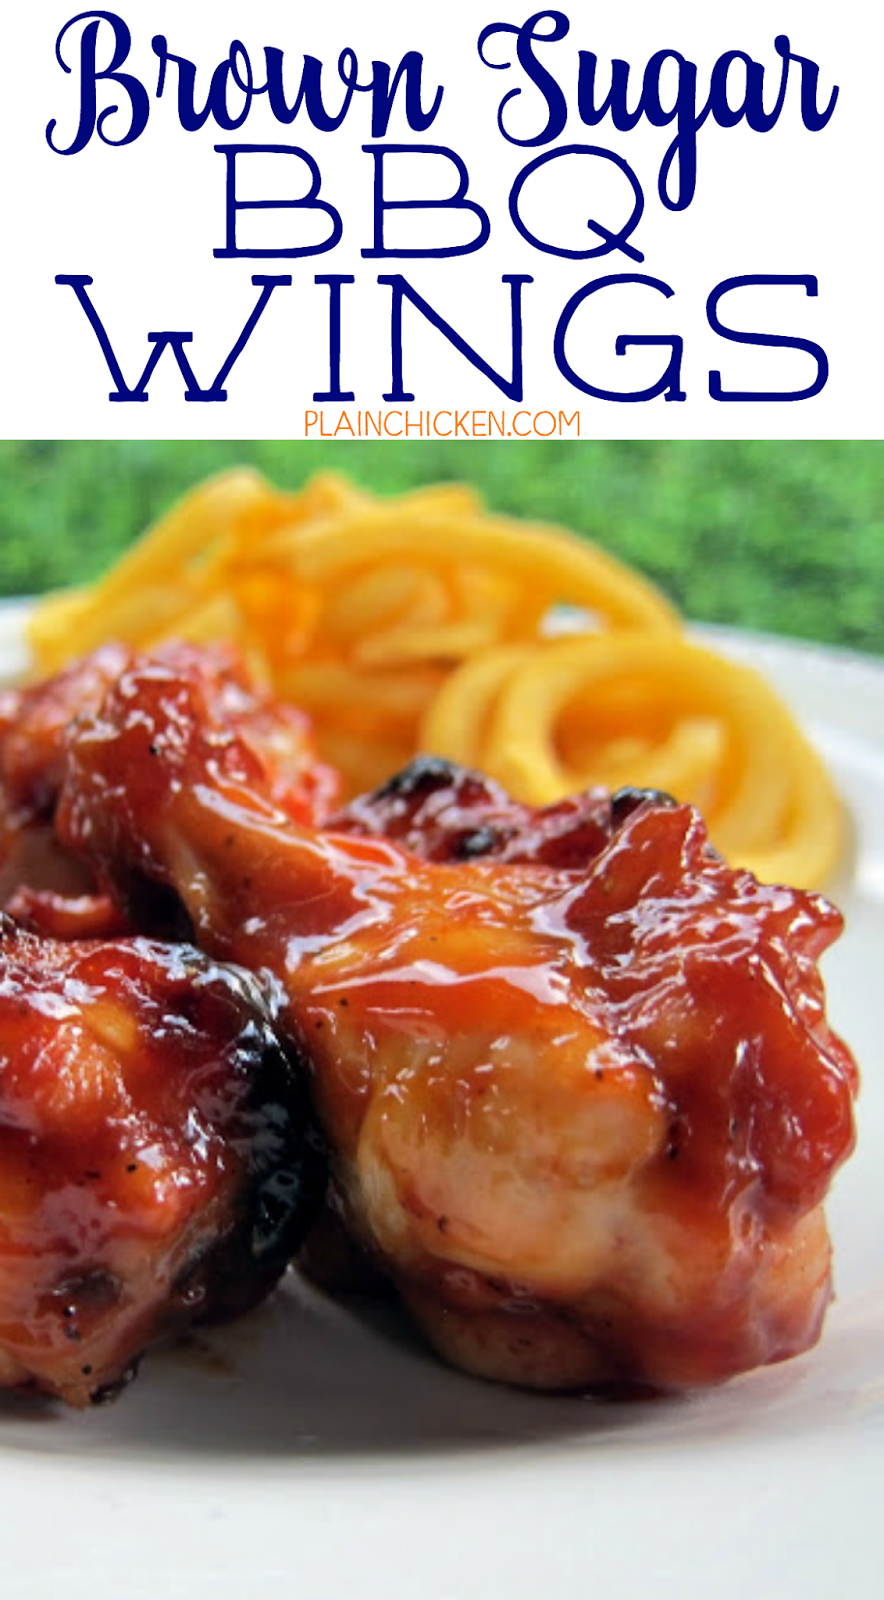 Brown Sugar BBQ Wings - chicken wings tossed in a quick homemade BBQ sauce and baked. Chicken drumettes, ketchup, brown sugar, worcestershire, mustard and cider vinegar. Can make sauce ahead of time. These things are SO good! Great for tailgates and parties. There are never any leftovers!